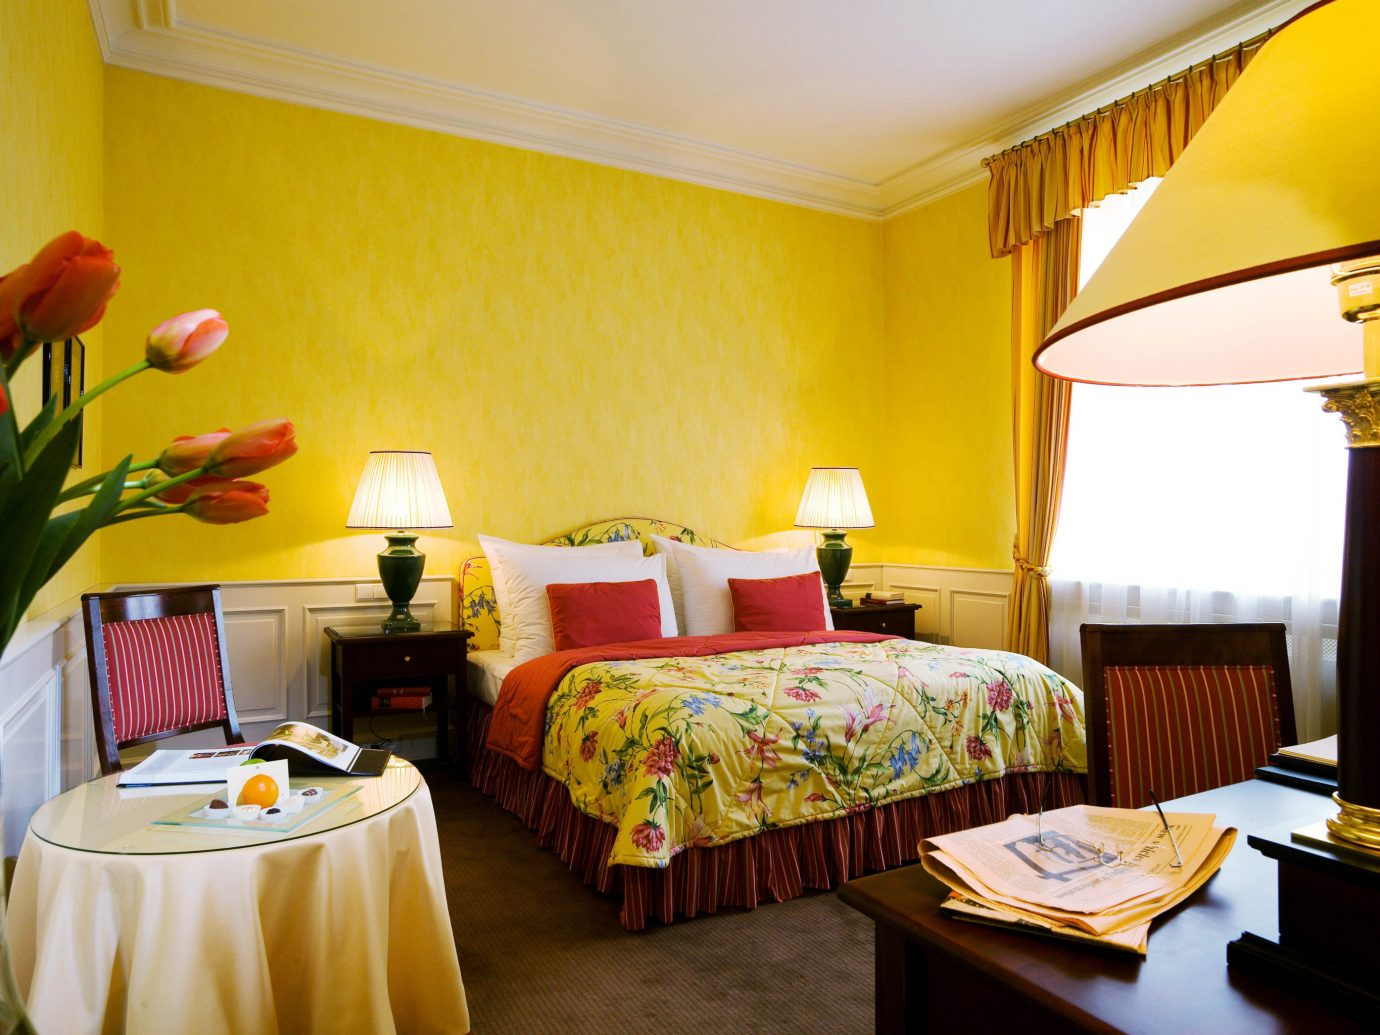 Bedroom City Classic Elegant europe Historic Hotels Prague wall indoor room Suite yellow Resort ceiling estate cottage interior design real estate Villa bright furniture